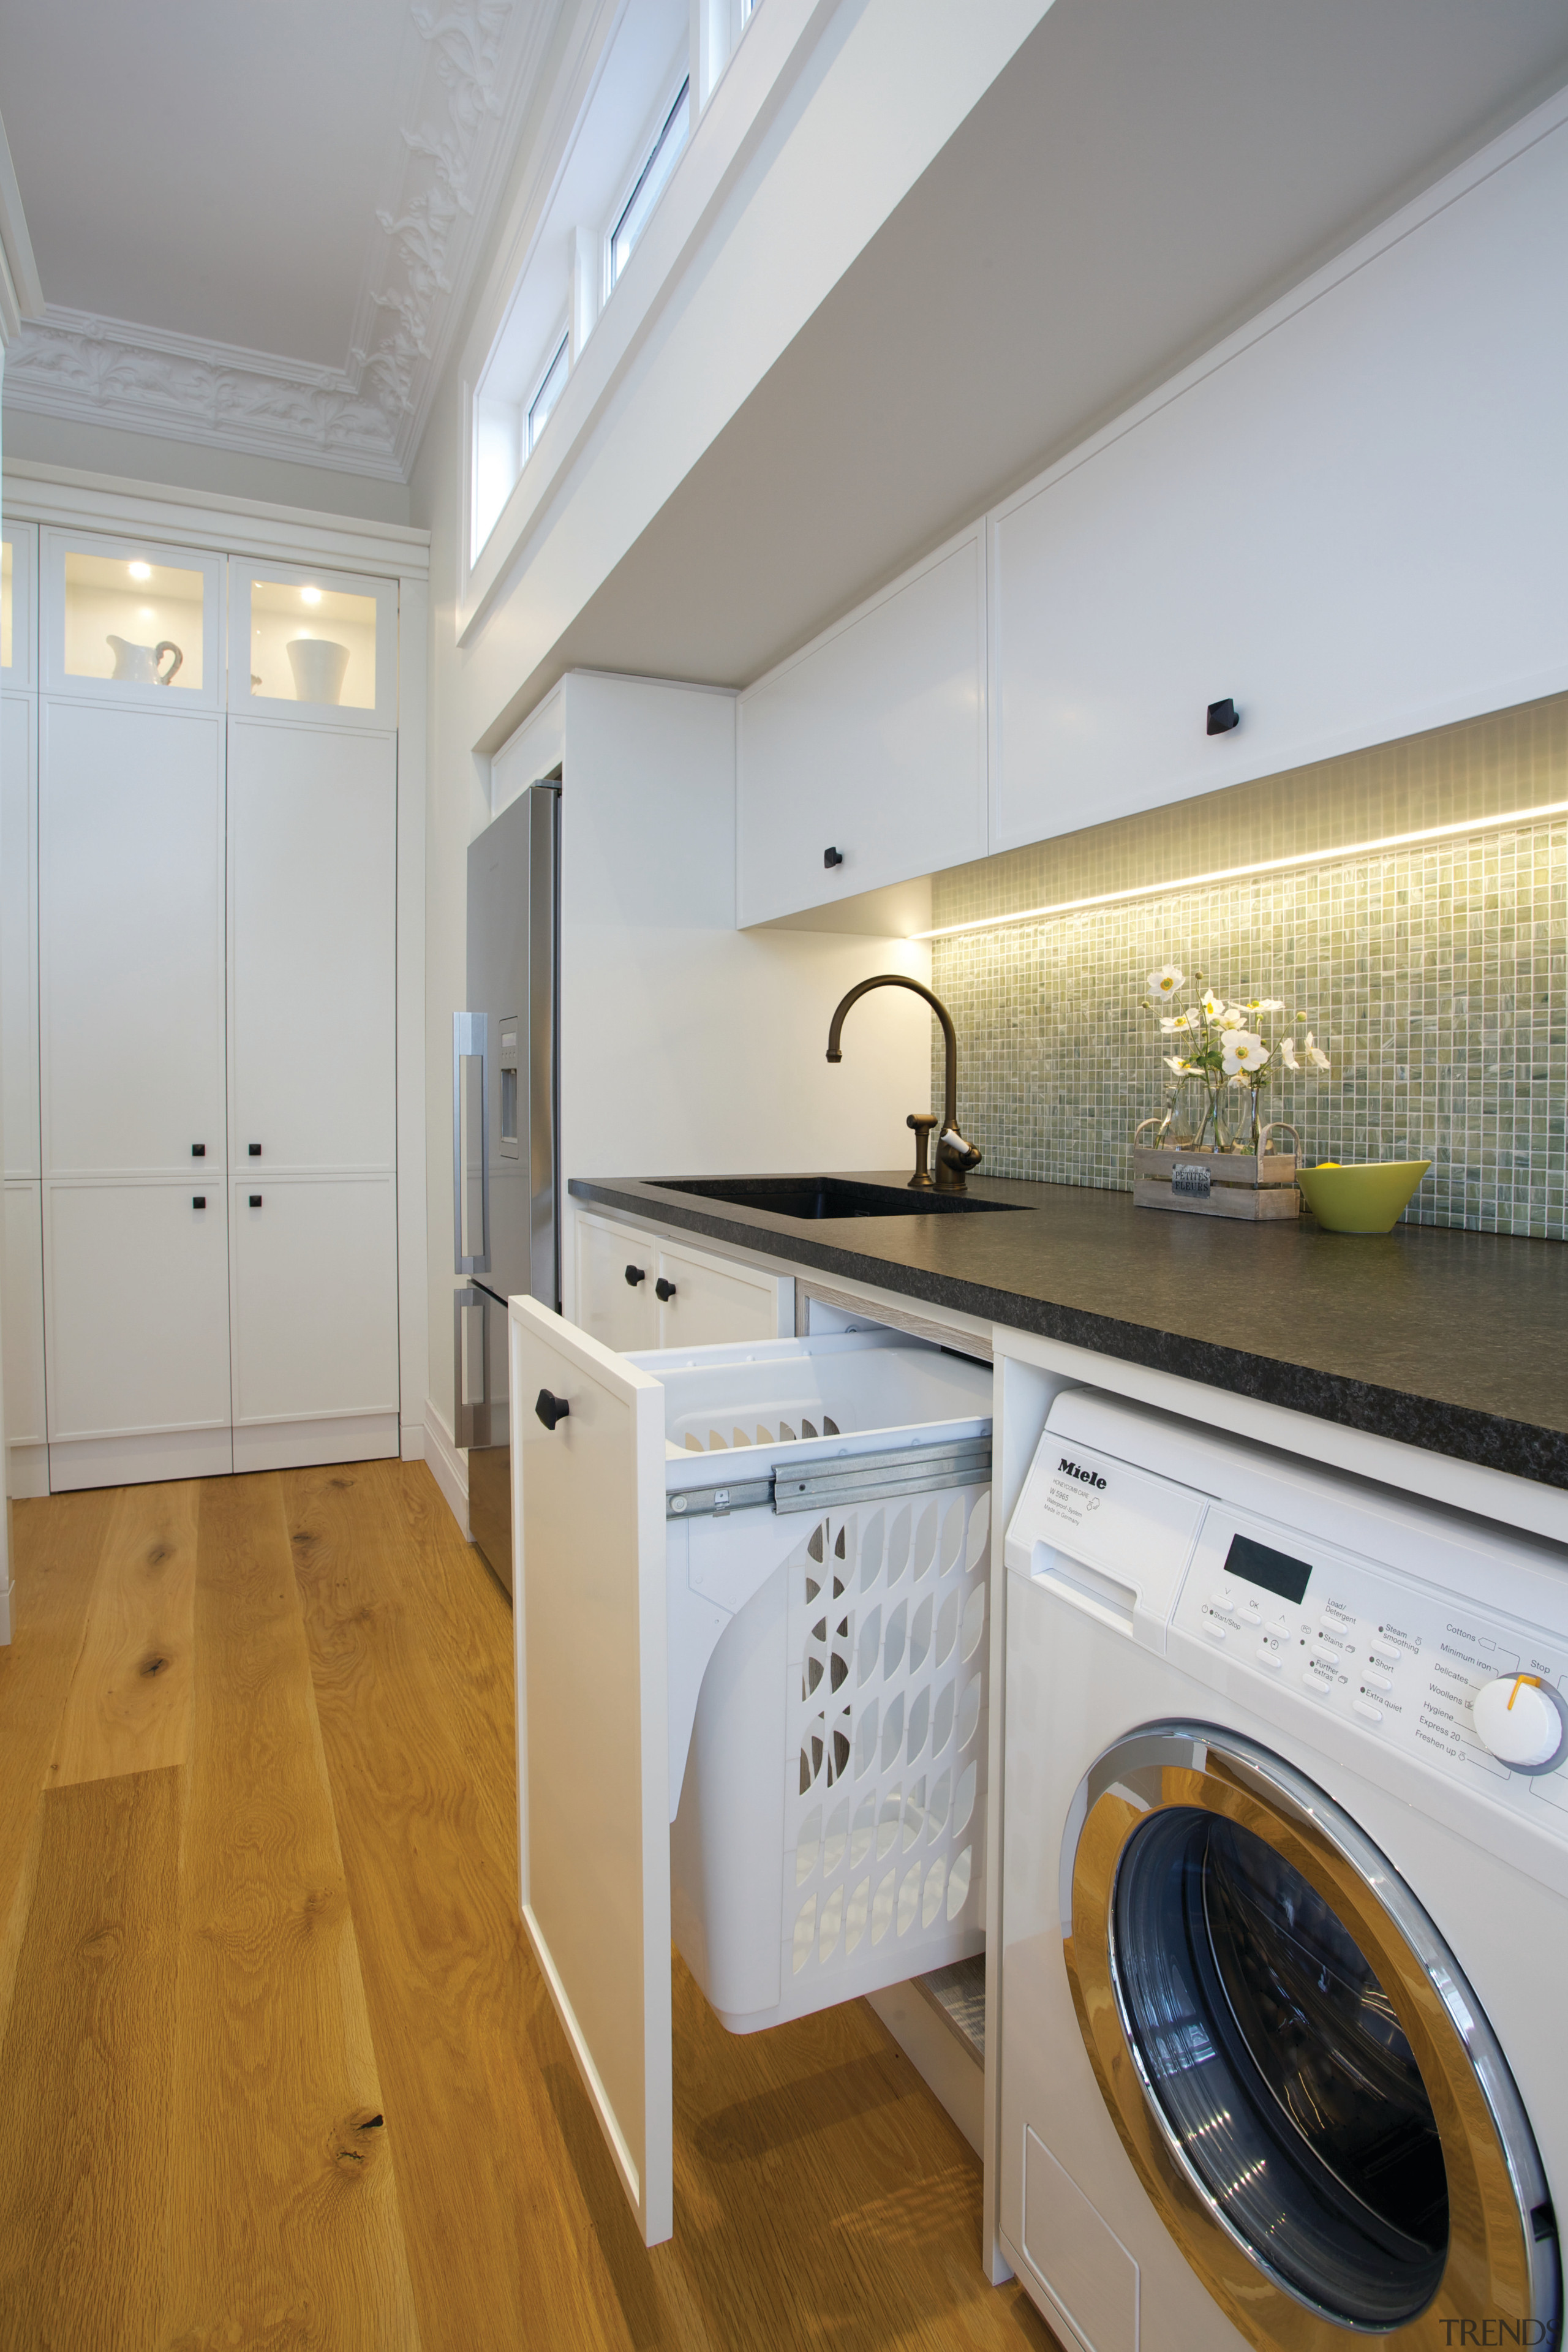 A Hideaway Laundry Hamper completes this multi-purpose space countertop, floor, interior design, kitchen, laundry room, major appliance, property, real estate, room, gray